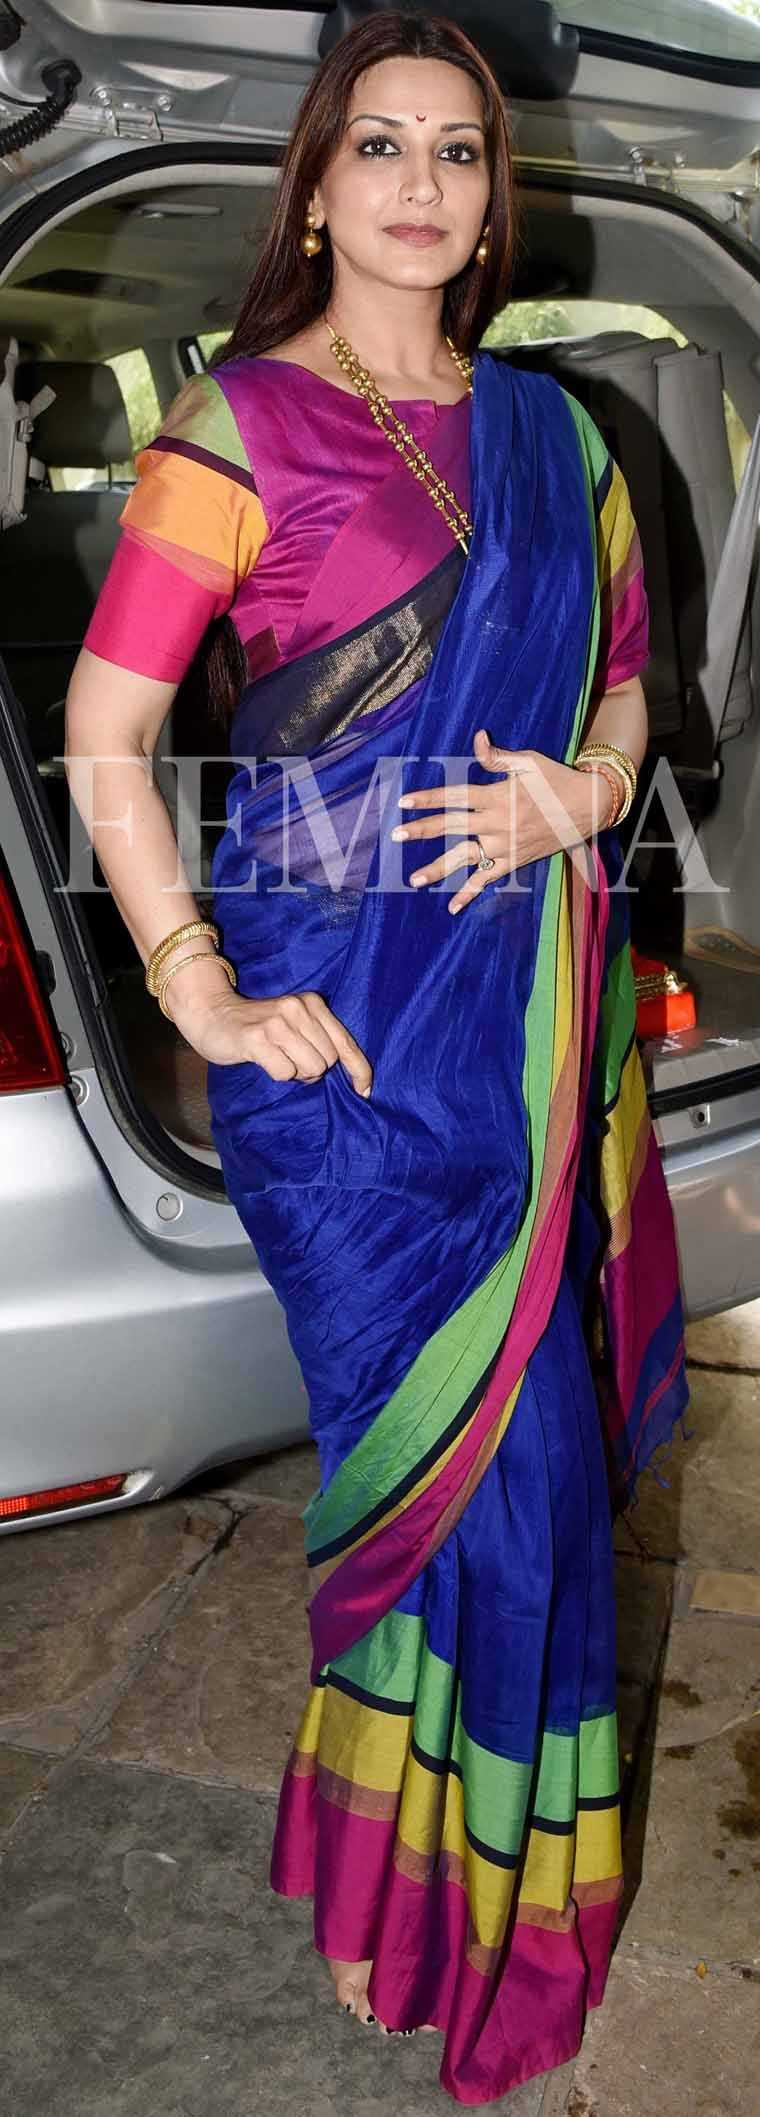 SONALI BENDRE: There's nothing like a classic sari to get you in the festive spirit. Sonali recently took part in festive celebrations wearing a jewel-toned striped sari.